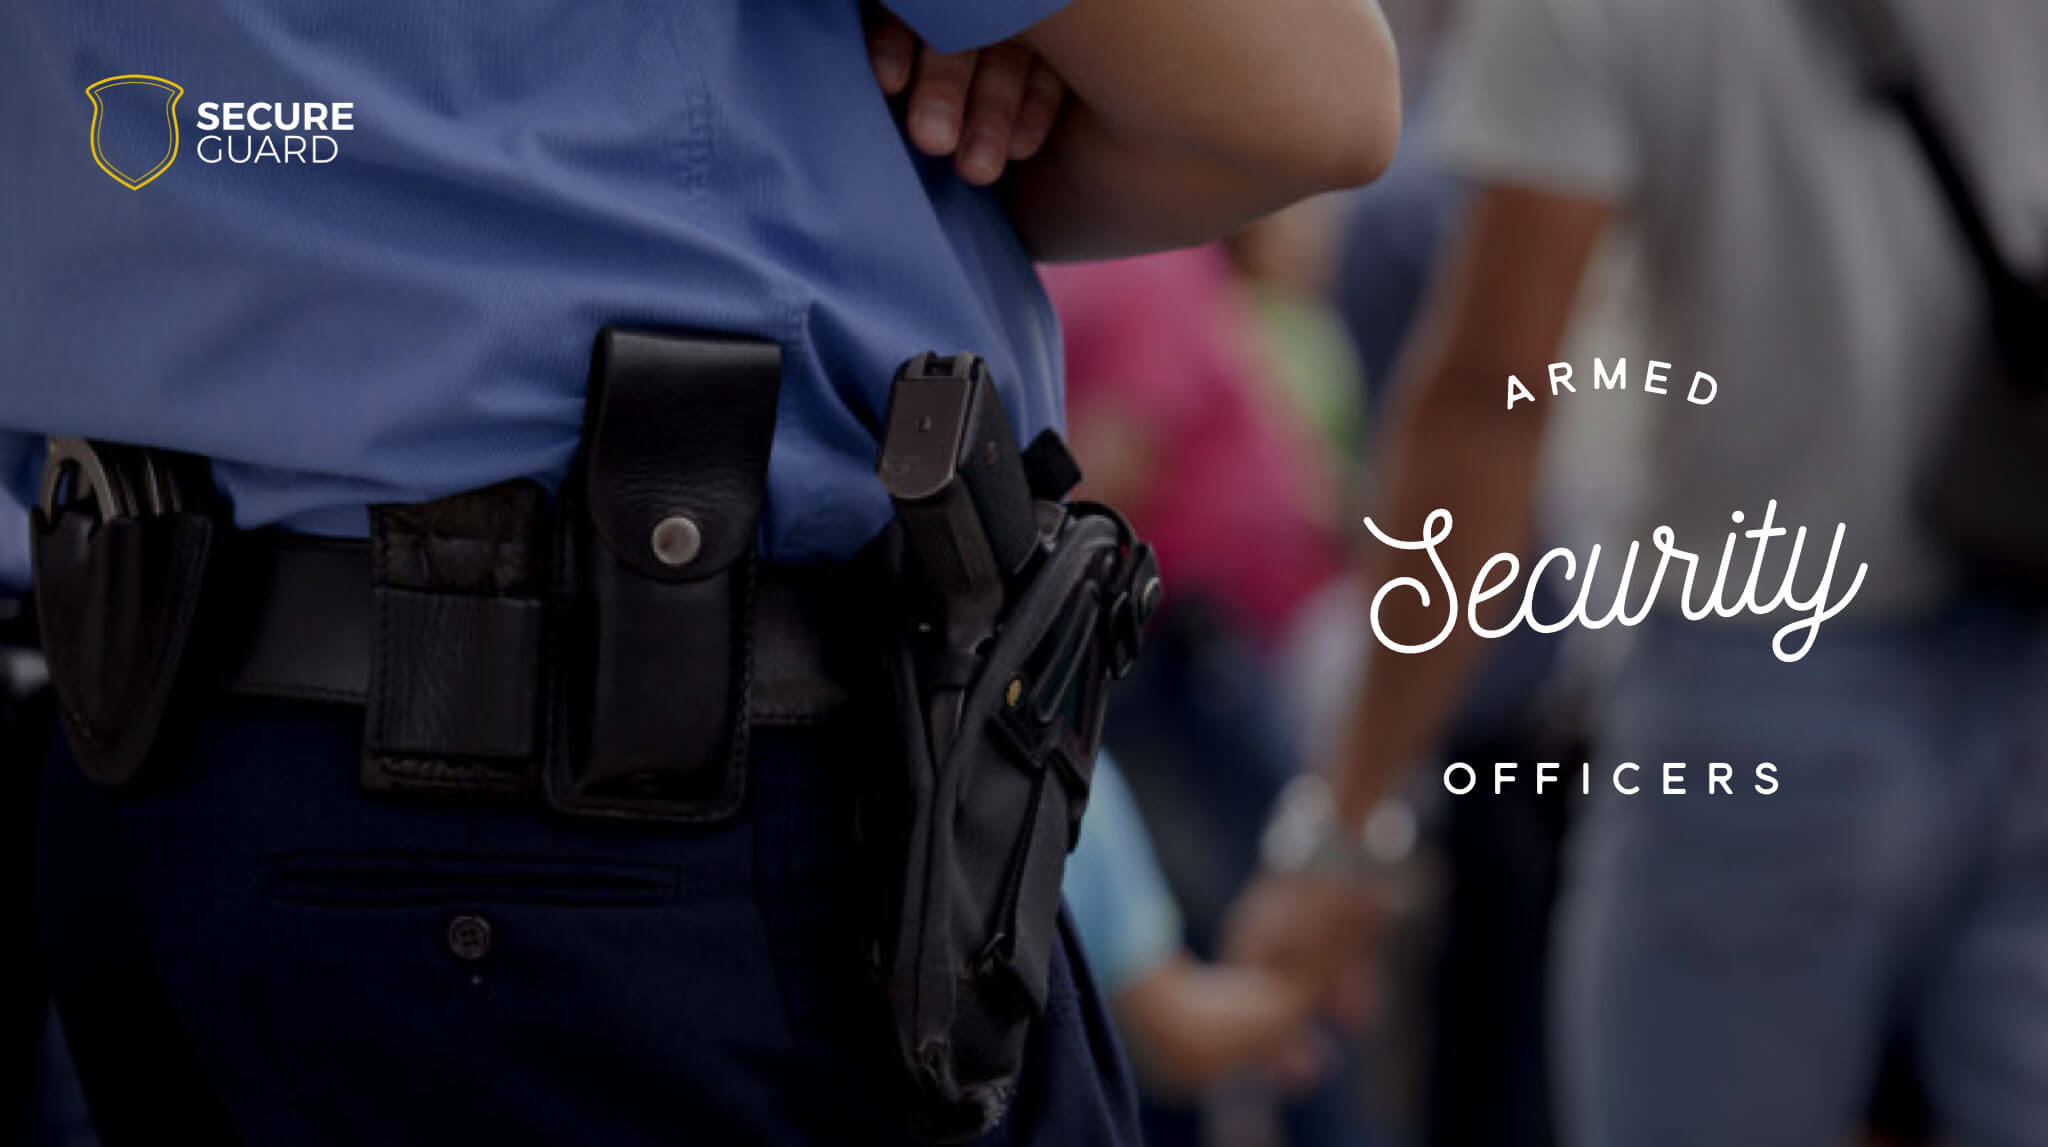 Armed Security Officers